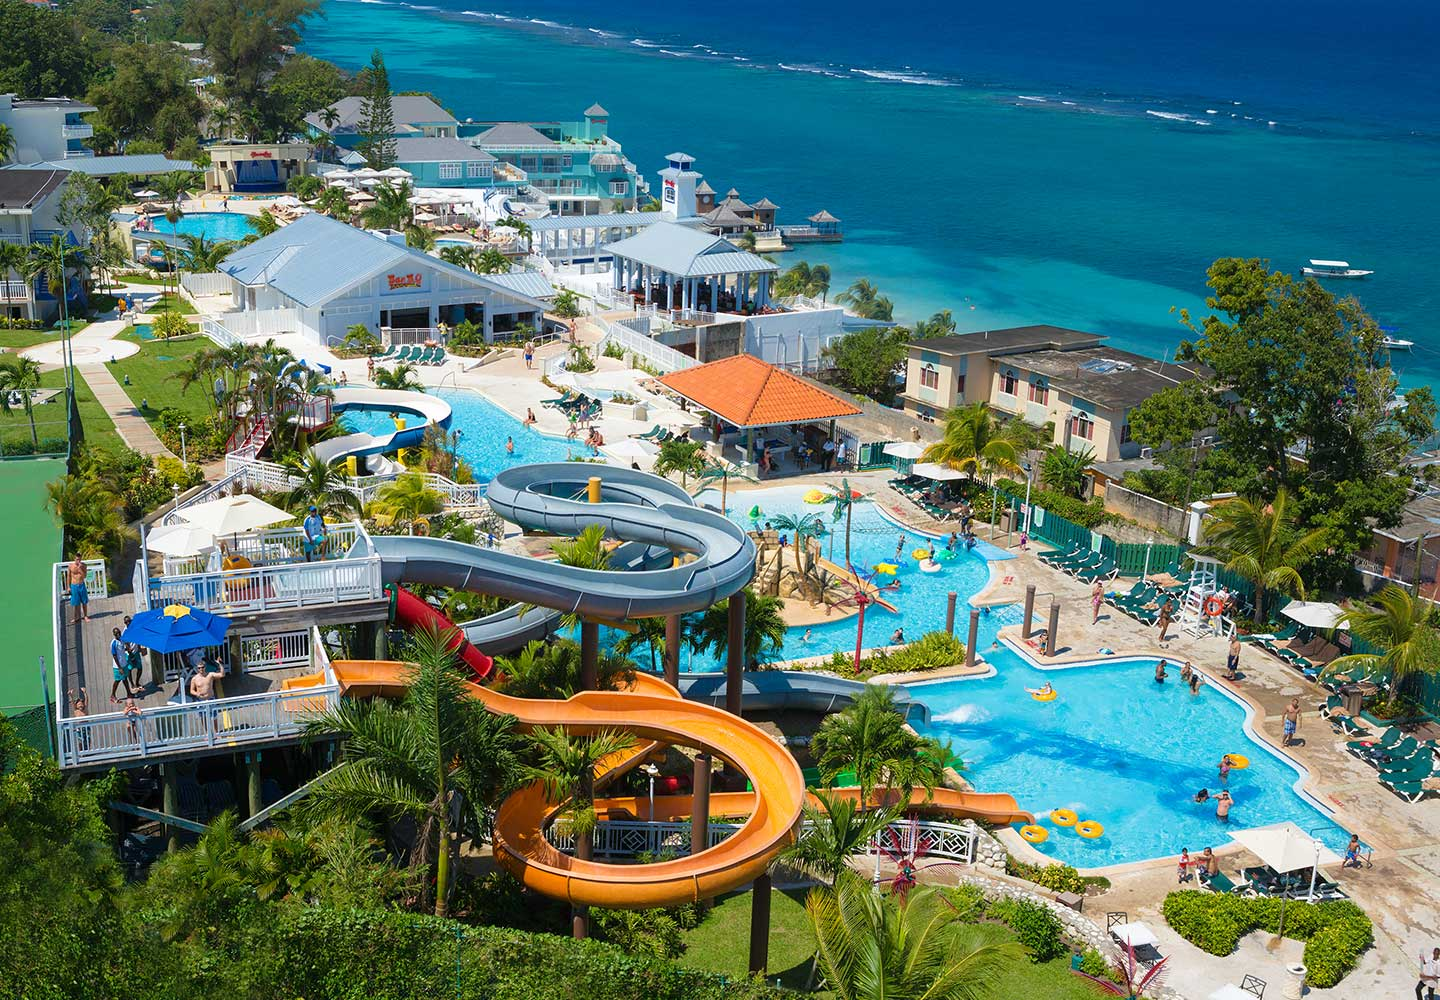 All Inclusive Resort 5 Best All Inclusive Resorts For Families In The Caribbean